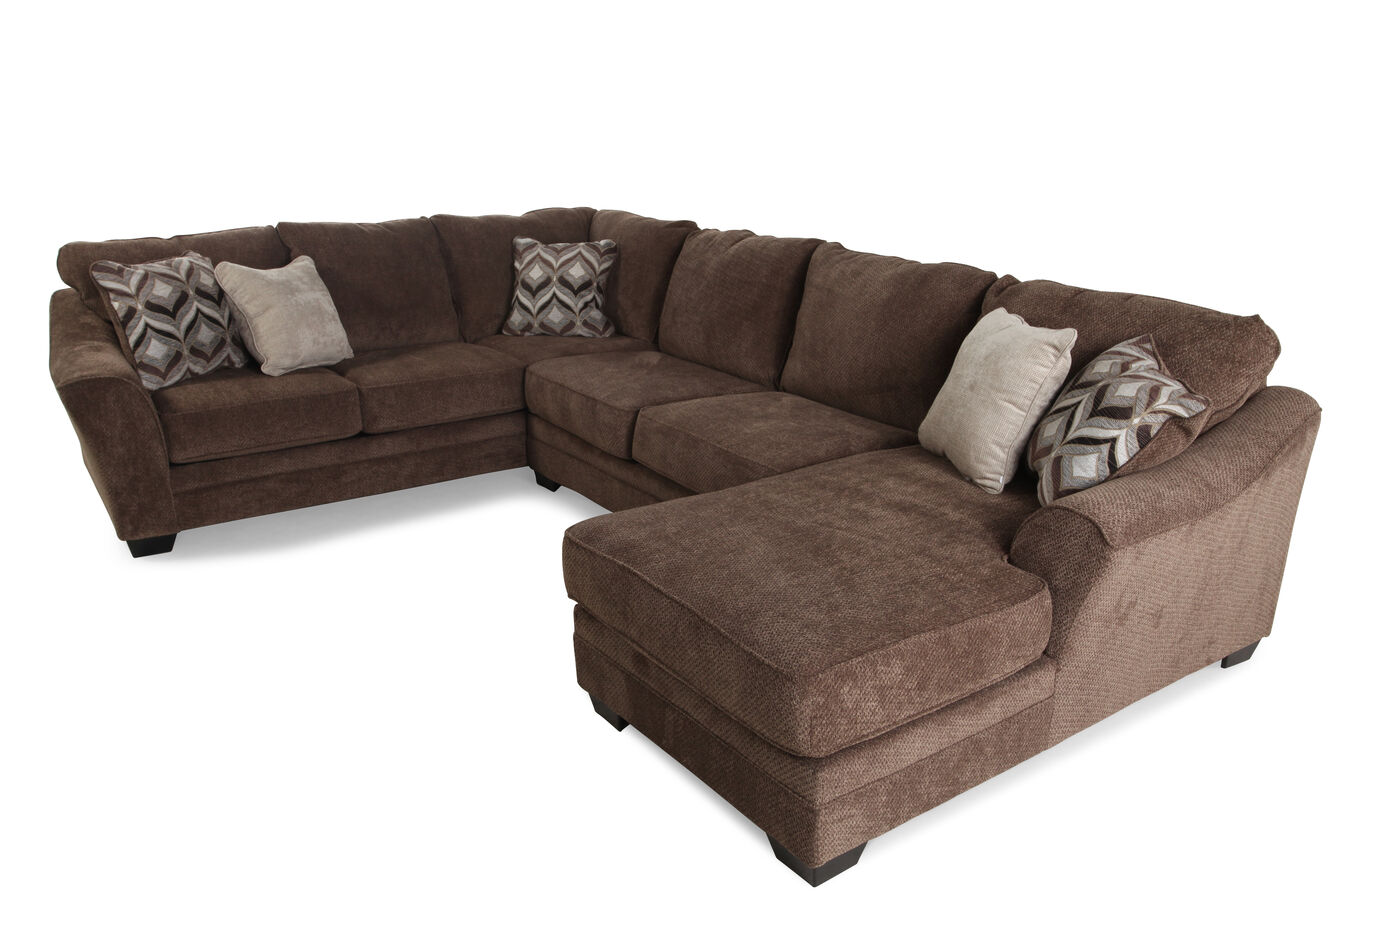 Mathis Brothers Living Room Furniture Sectional Sofas Living Room